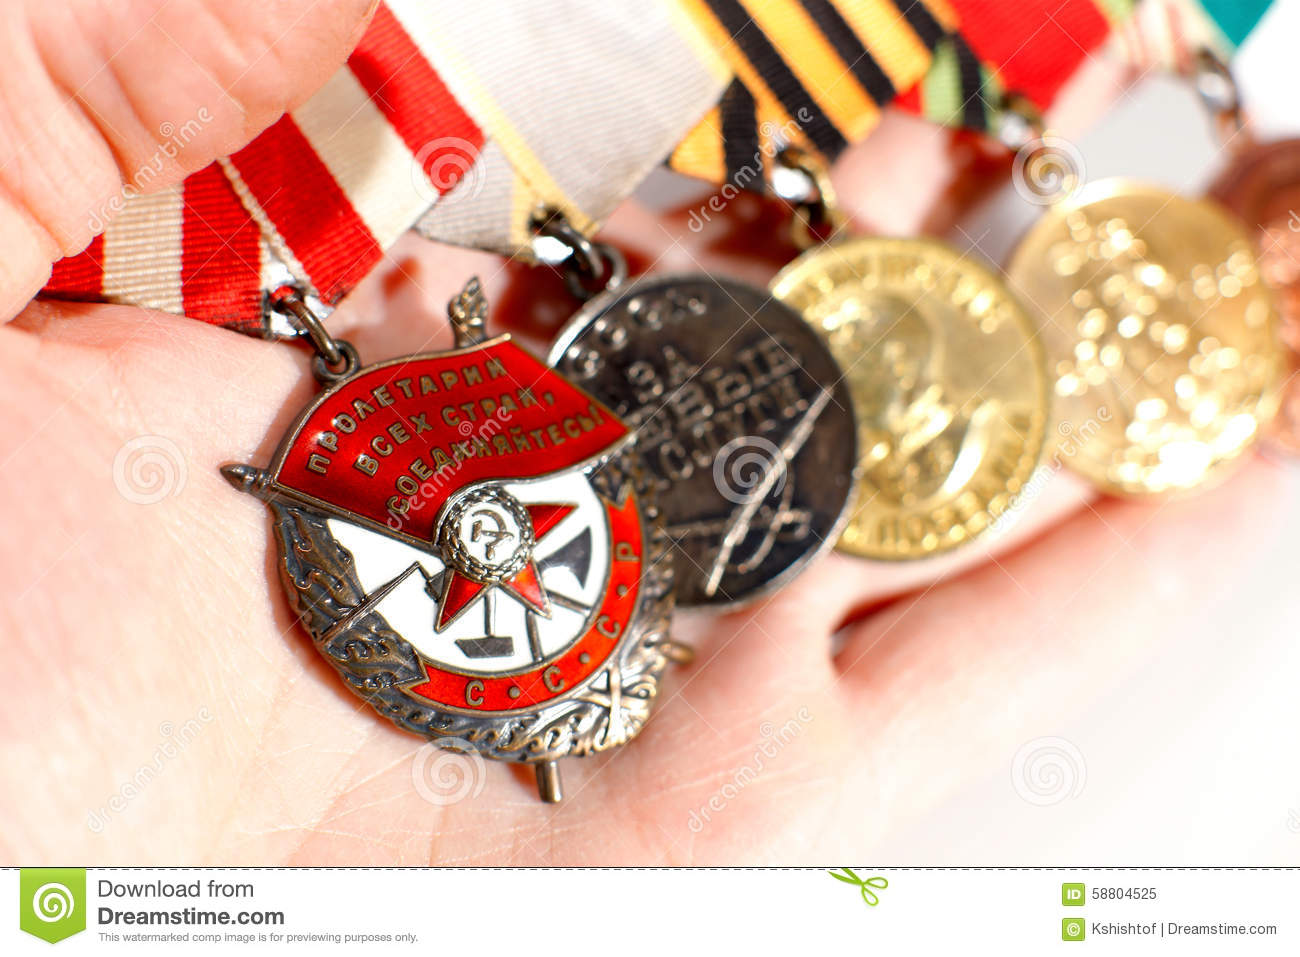 how to buy canadian war medals of relatives